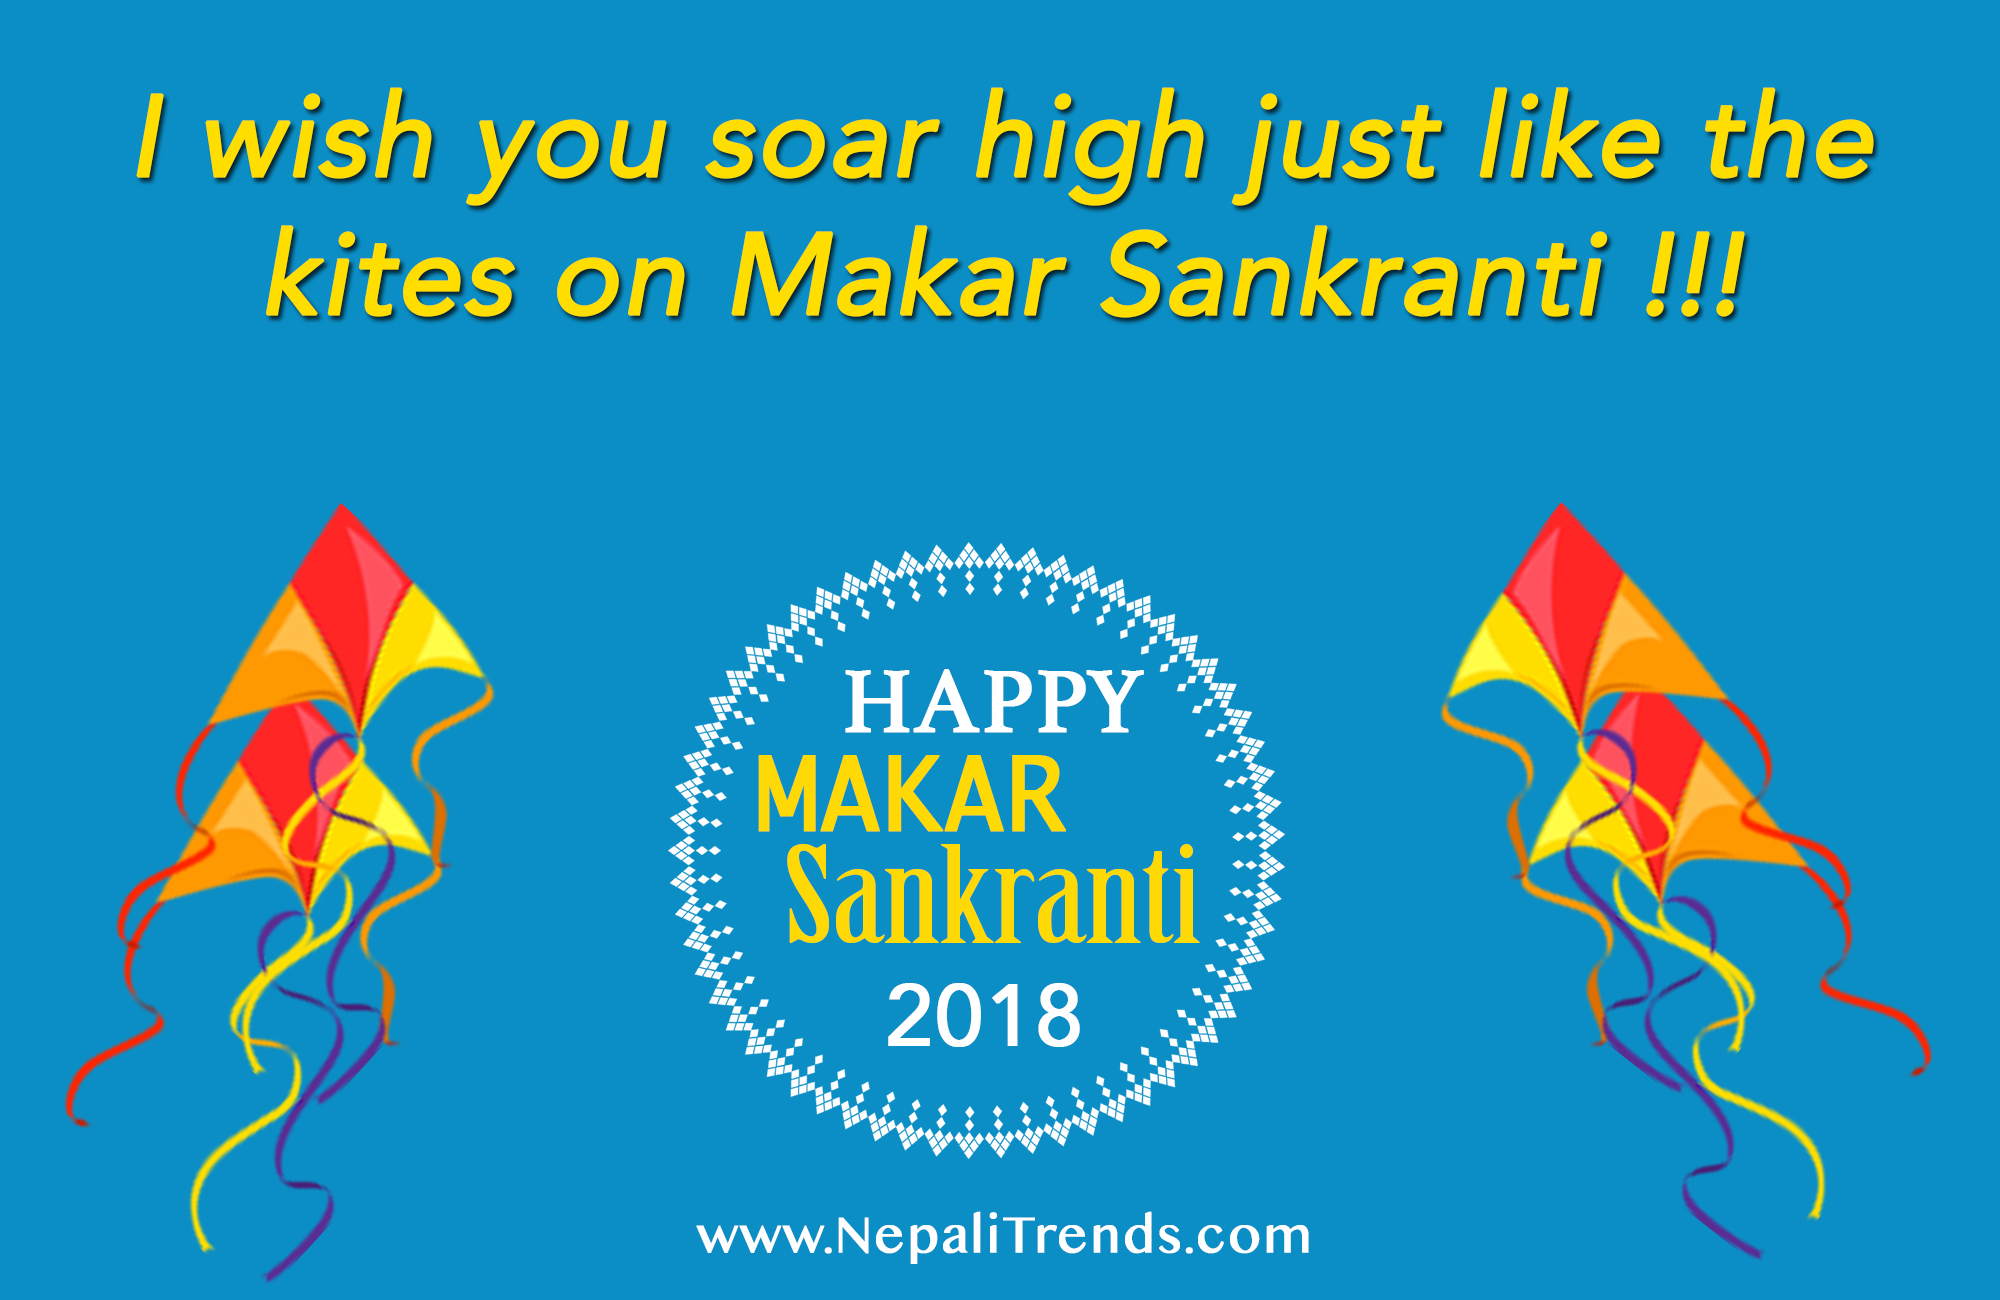 Maghemakar sankranti 2018 wishes cards messages greetings happy makar sankranti m4hsunfo